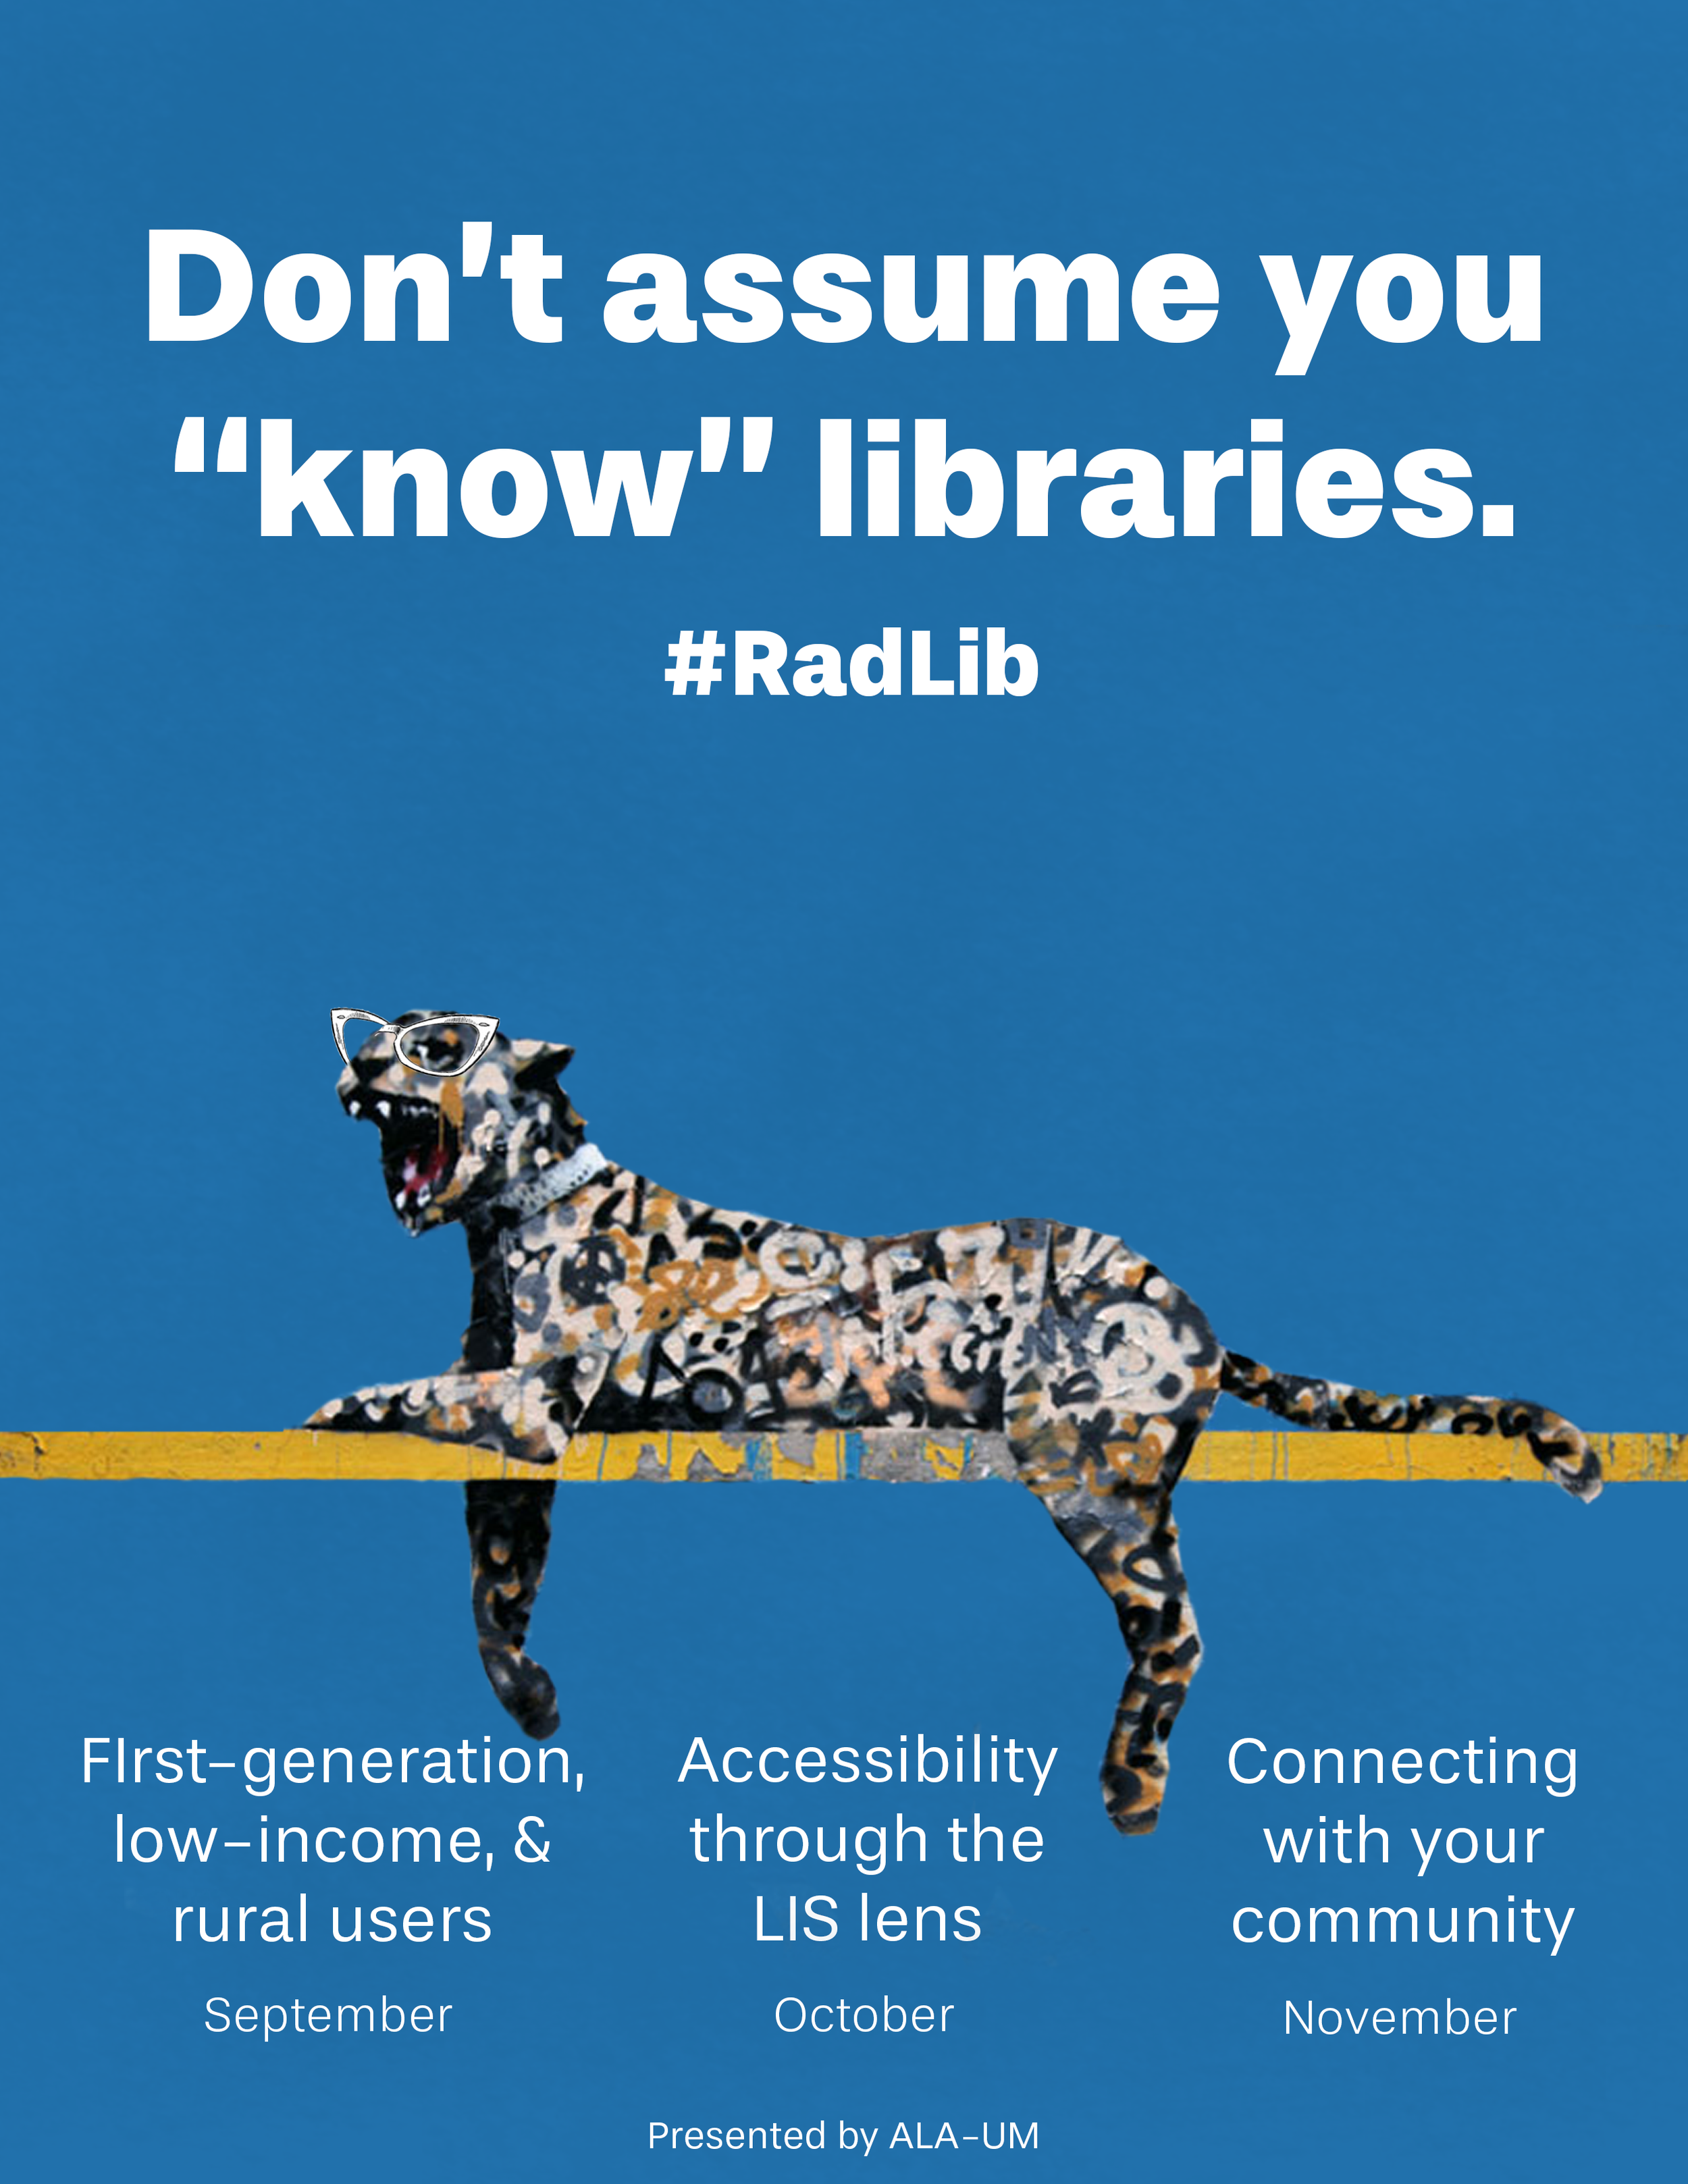 RadLib introductory poster including graffiti artwork of a leopard wearing cat-eye glasses